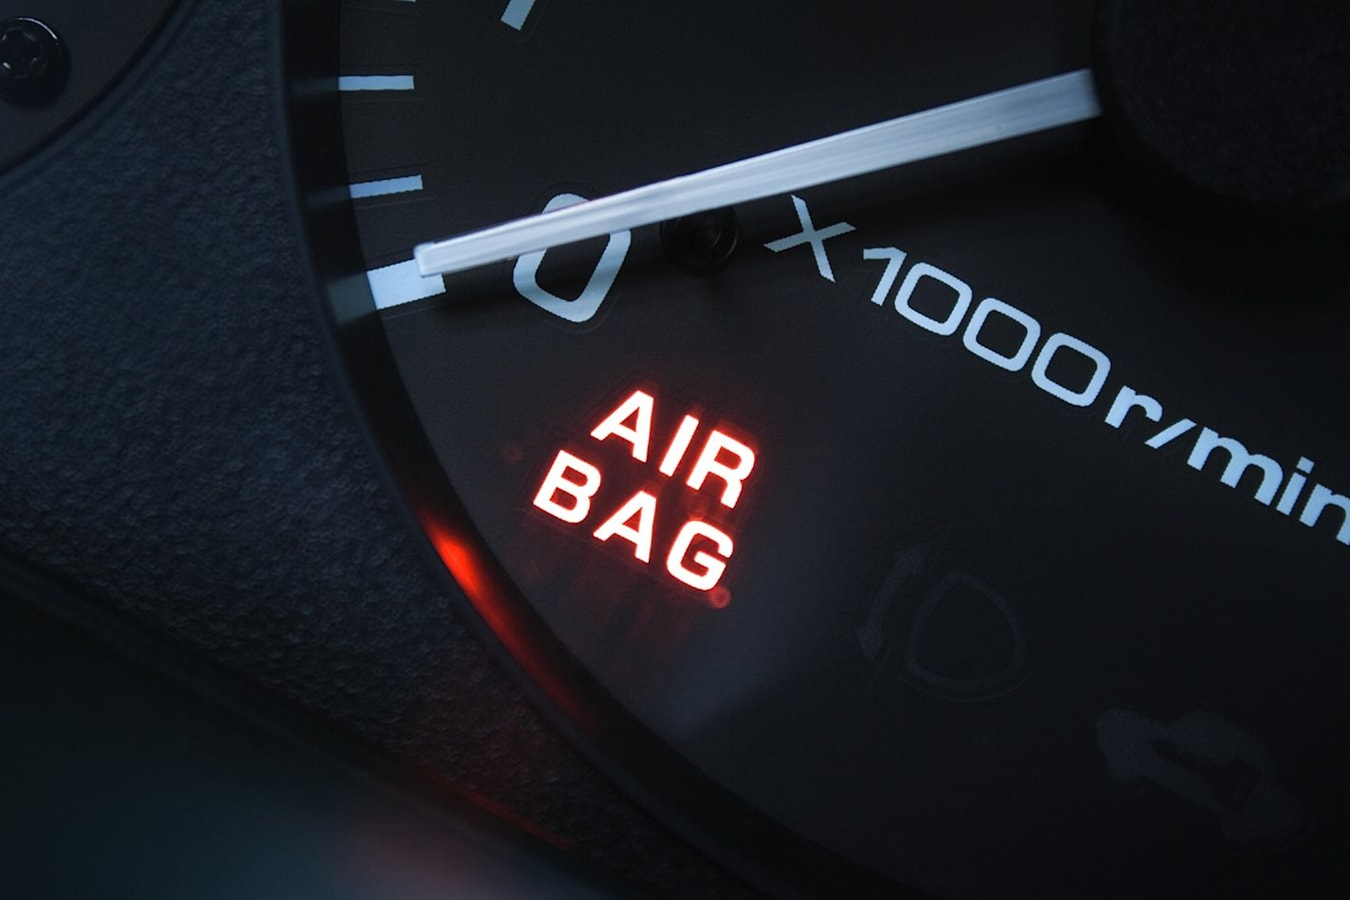 Airbag Other Jpg